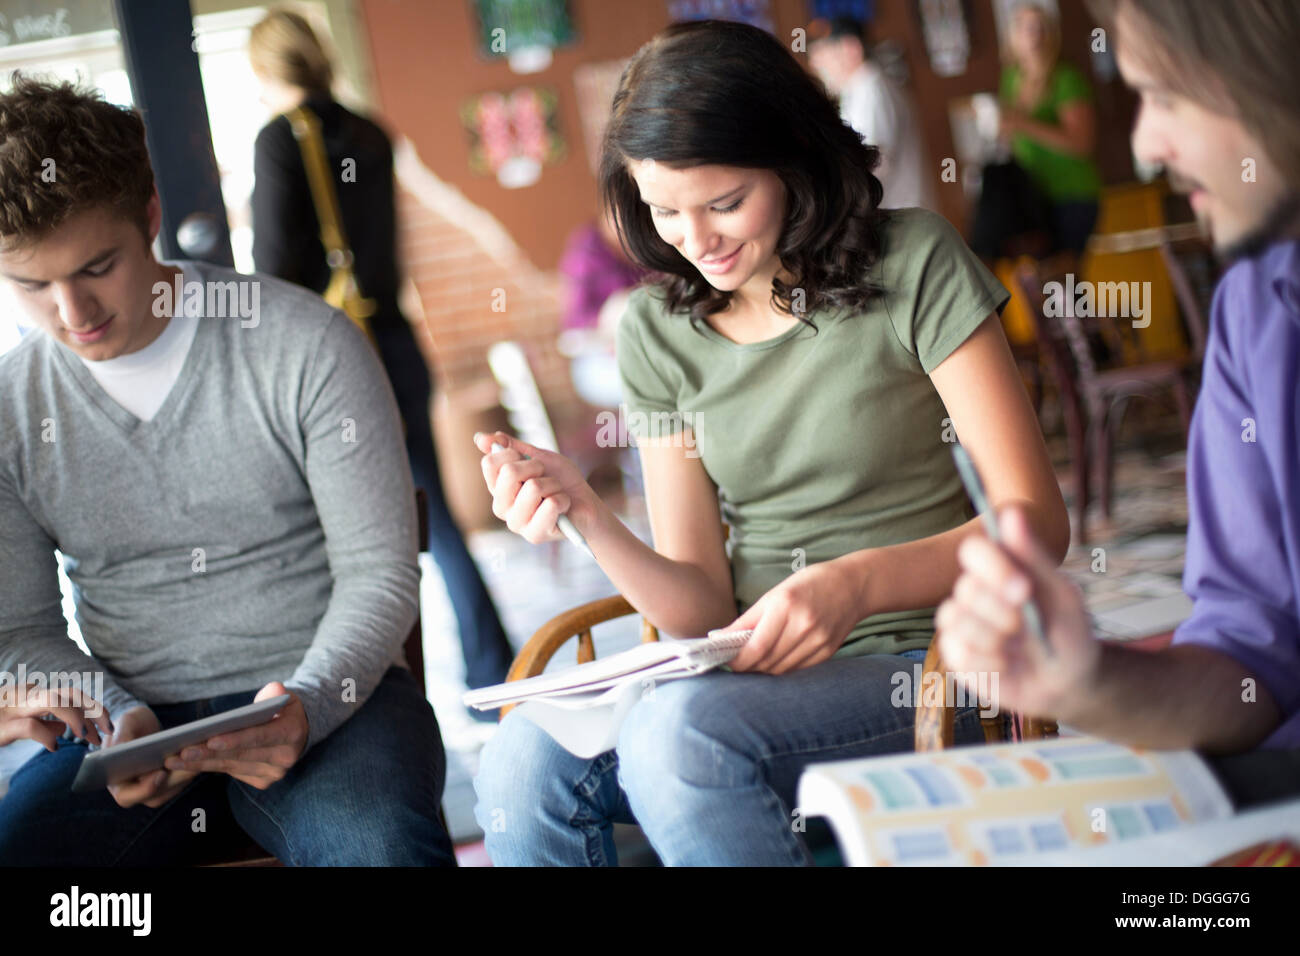 Small group of people studying in cafe - Stock Image